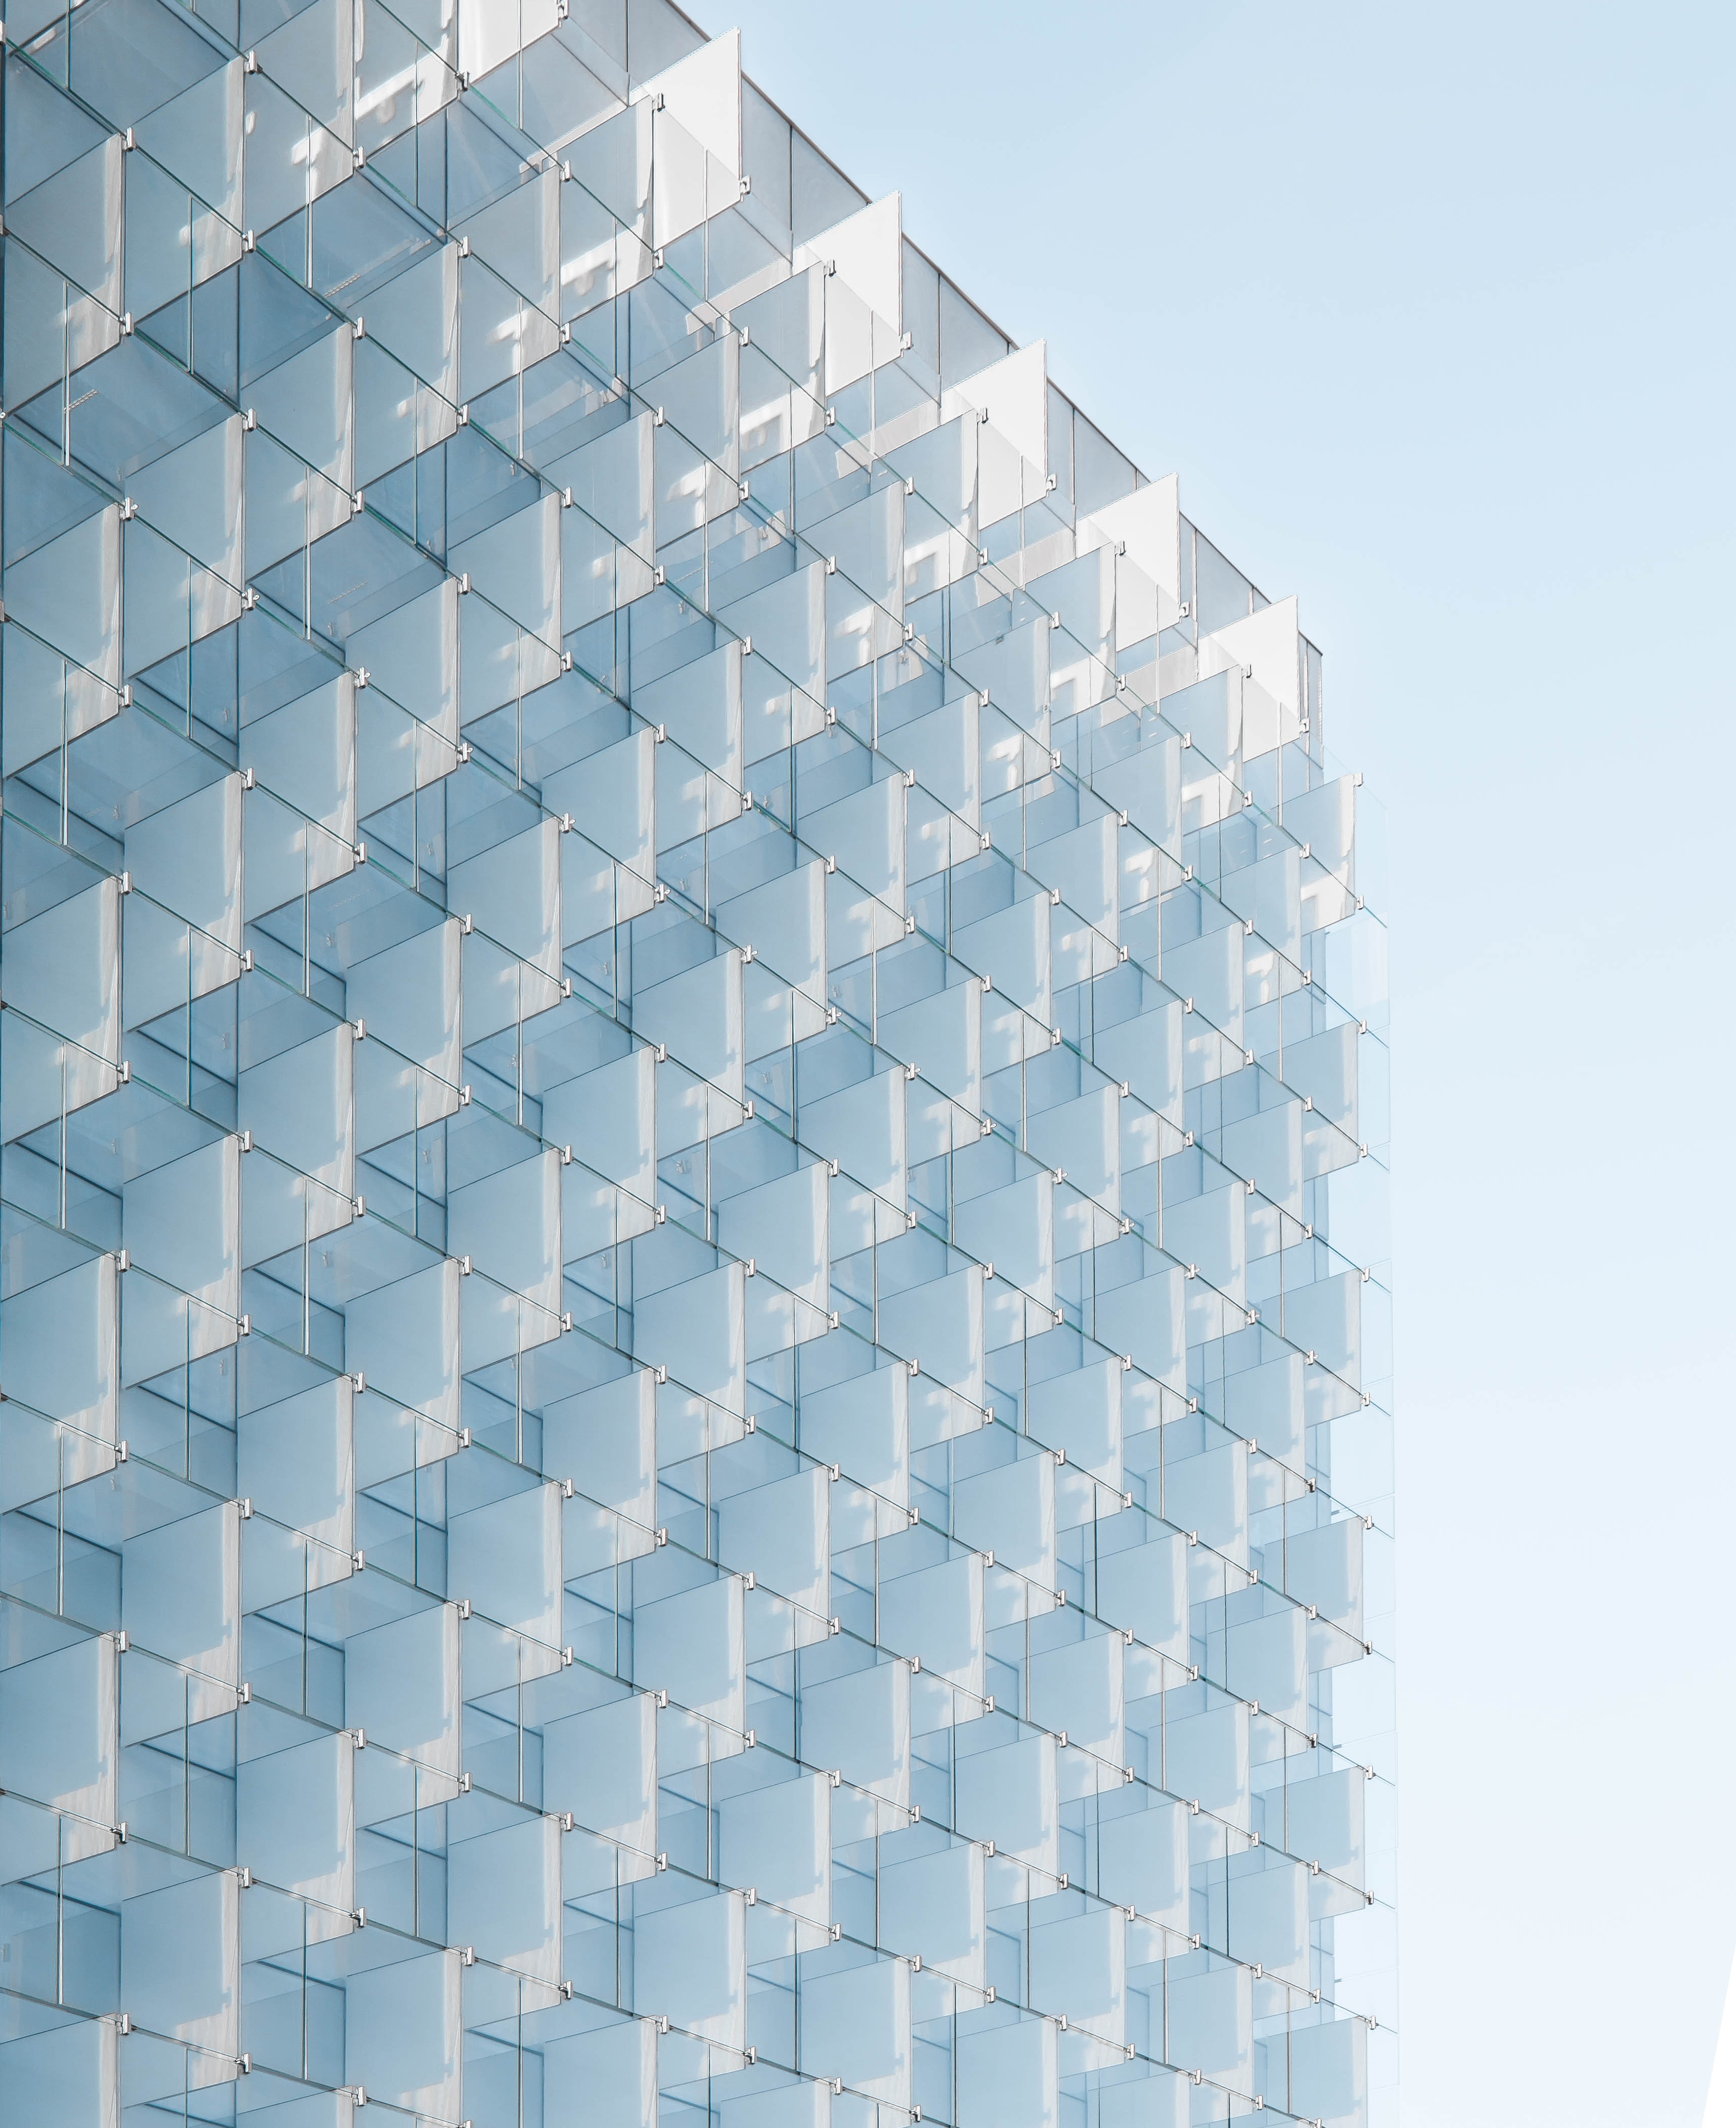 Regular glass plates in the facade of an office building in Madrid